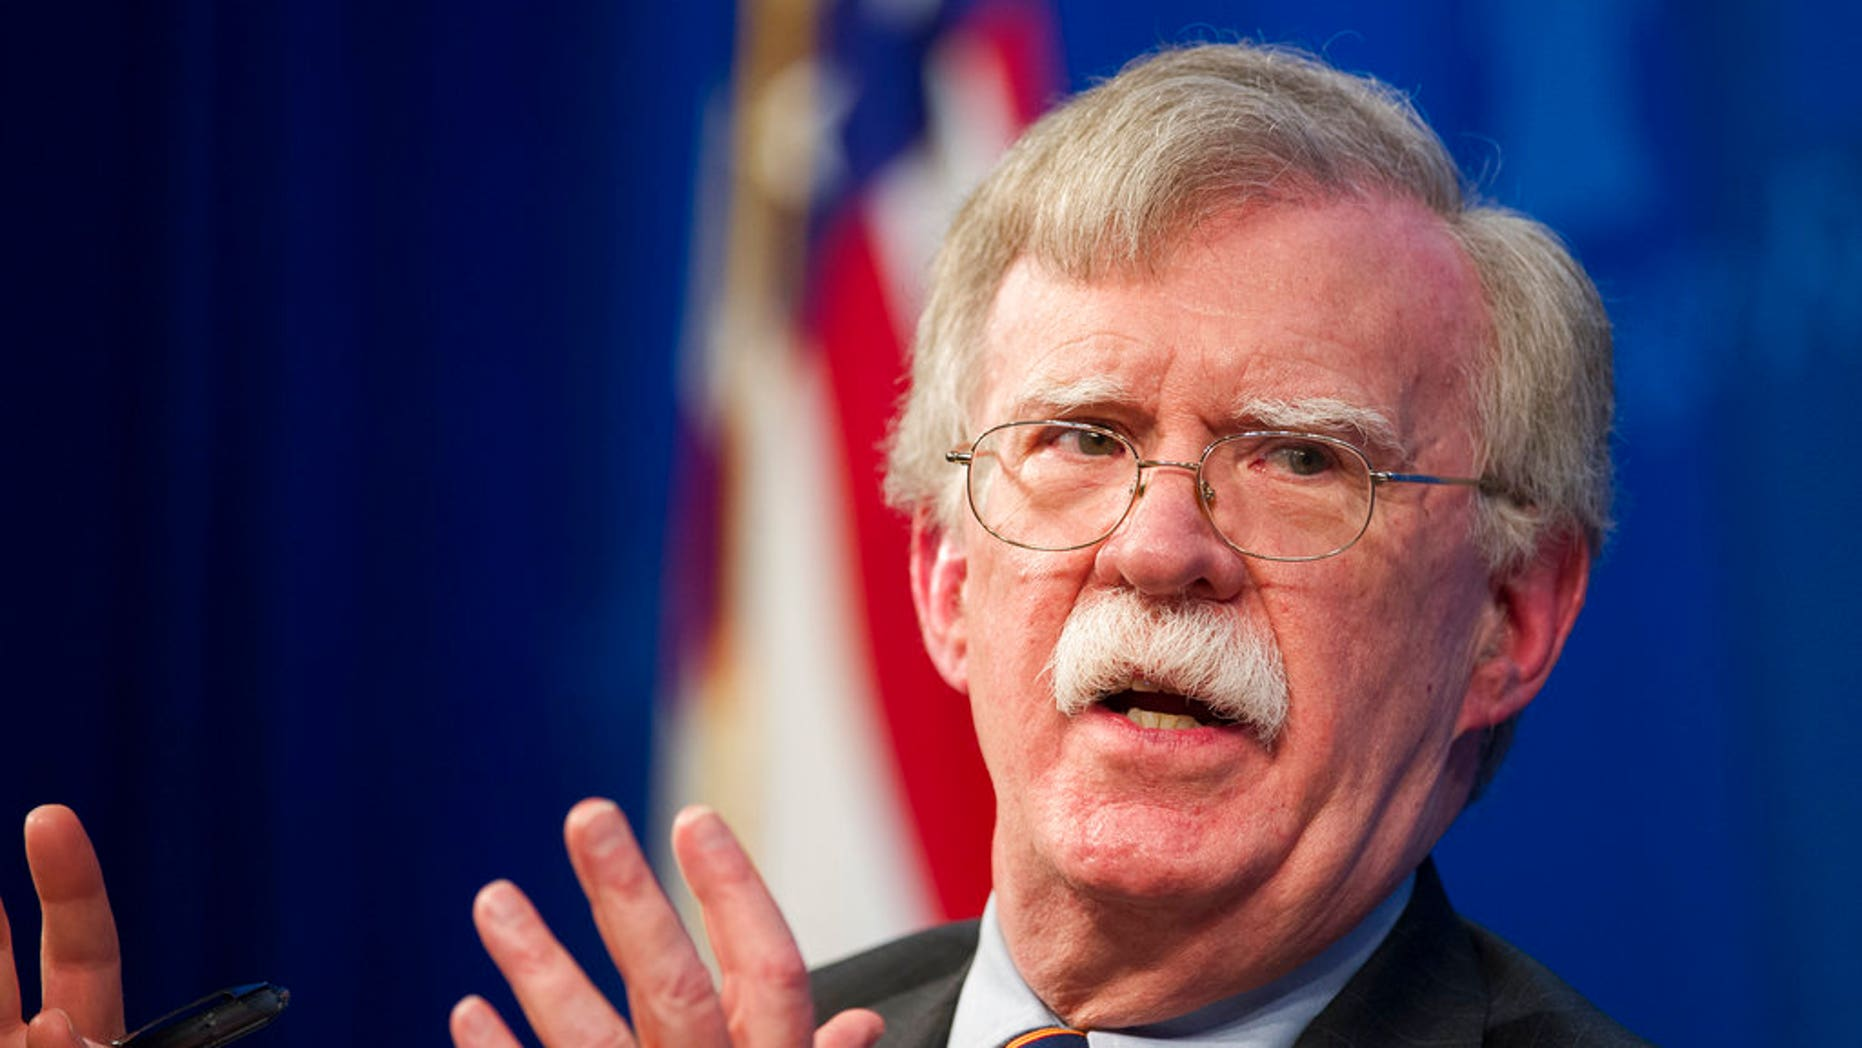 National Security Adviser John Bolton unveils the Trump Administration's Africa Strategy at the Heritage Foundation in Washington, Thursday, Dec. 13, 2018. (AP Photo/Cliff Owen)